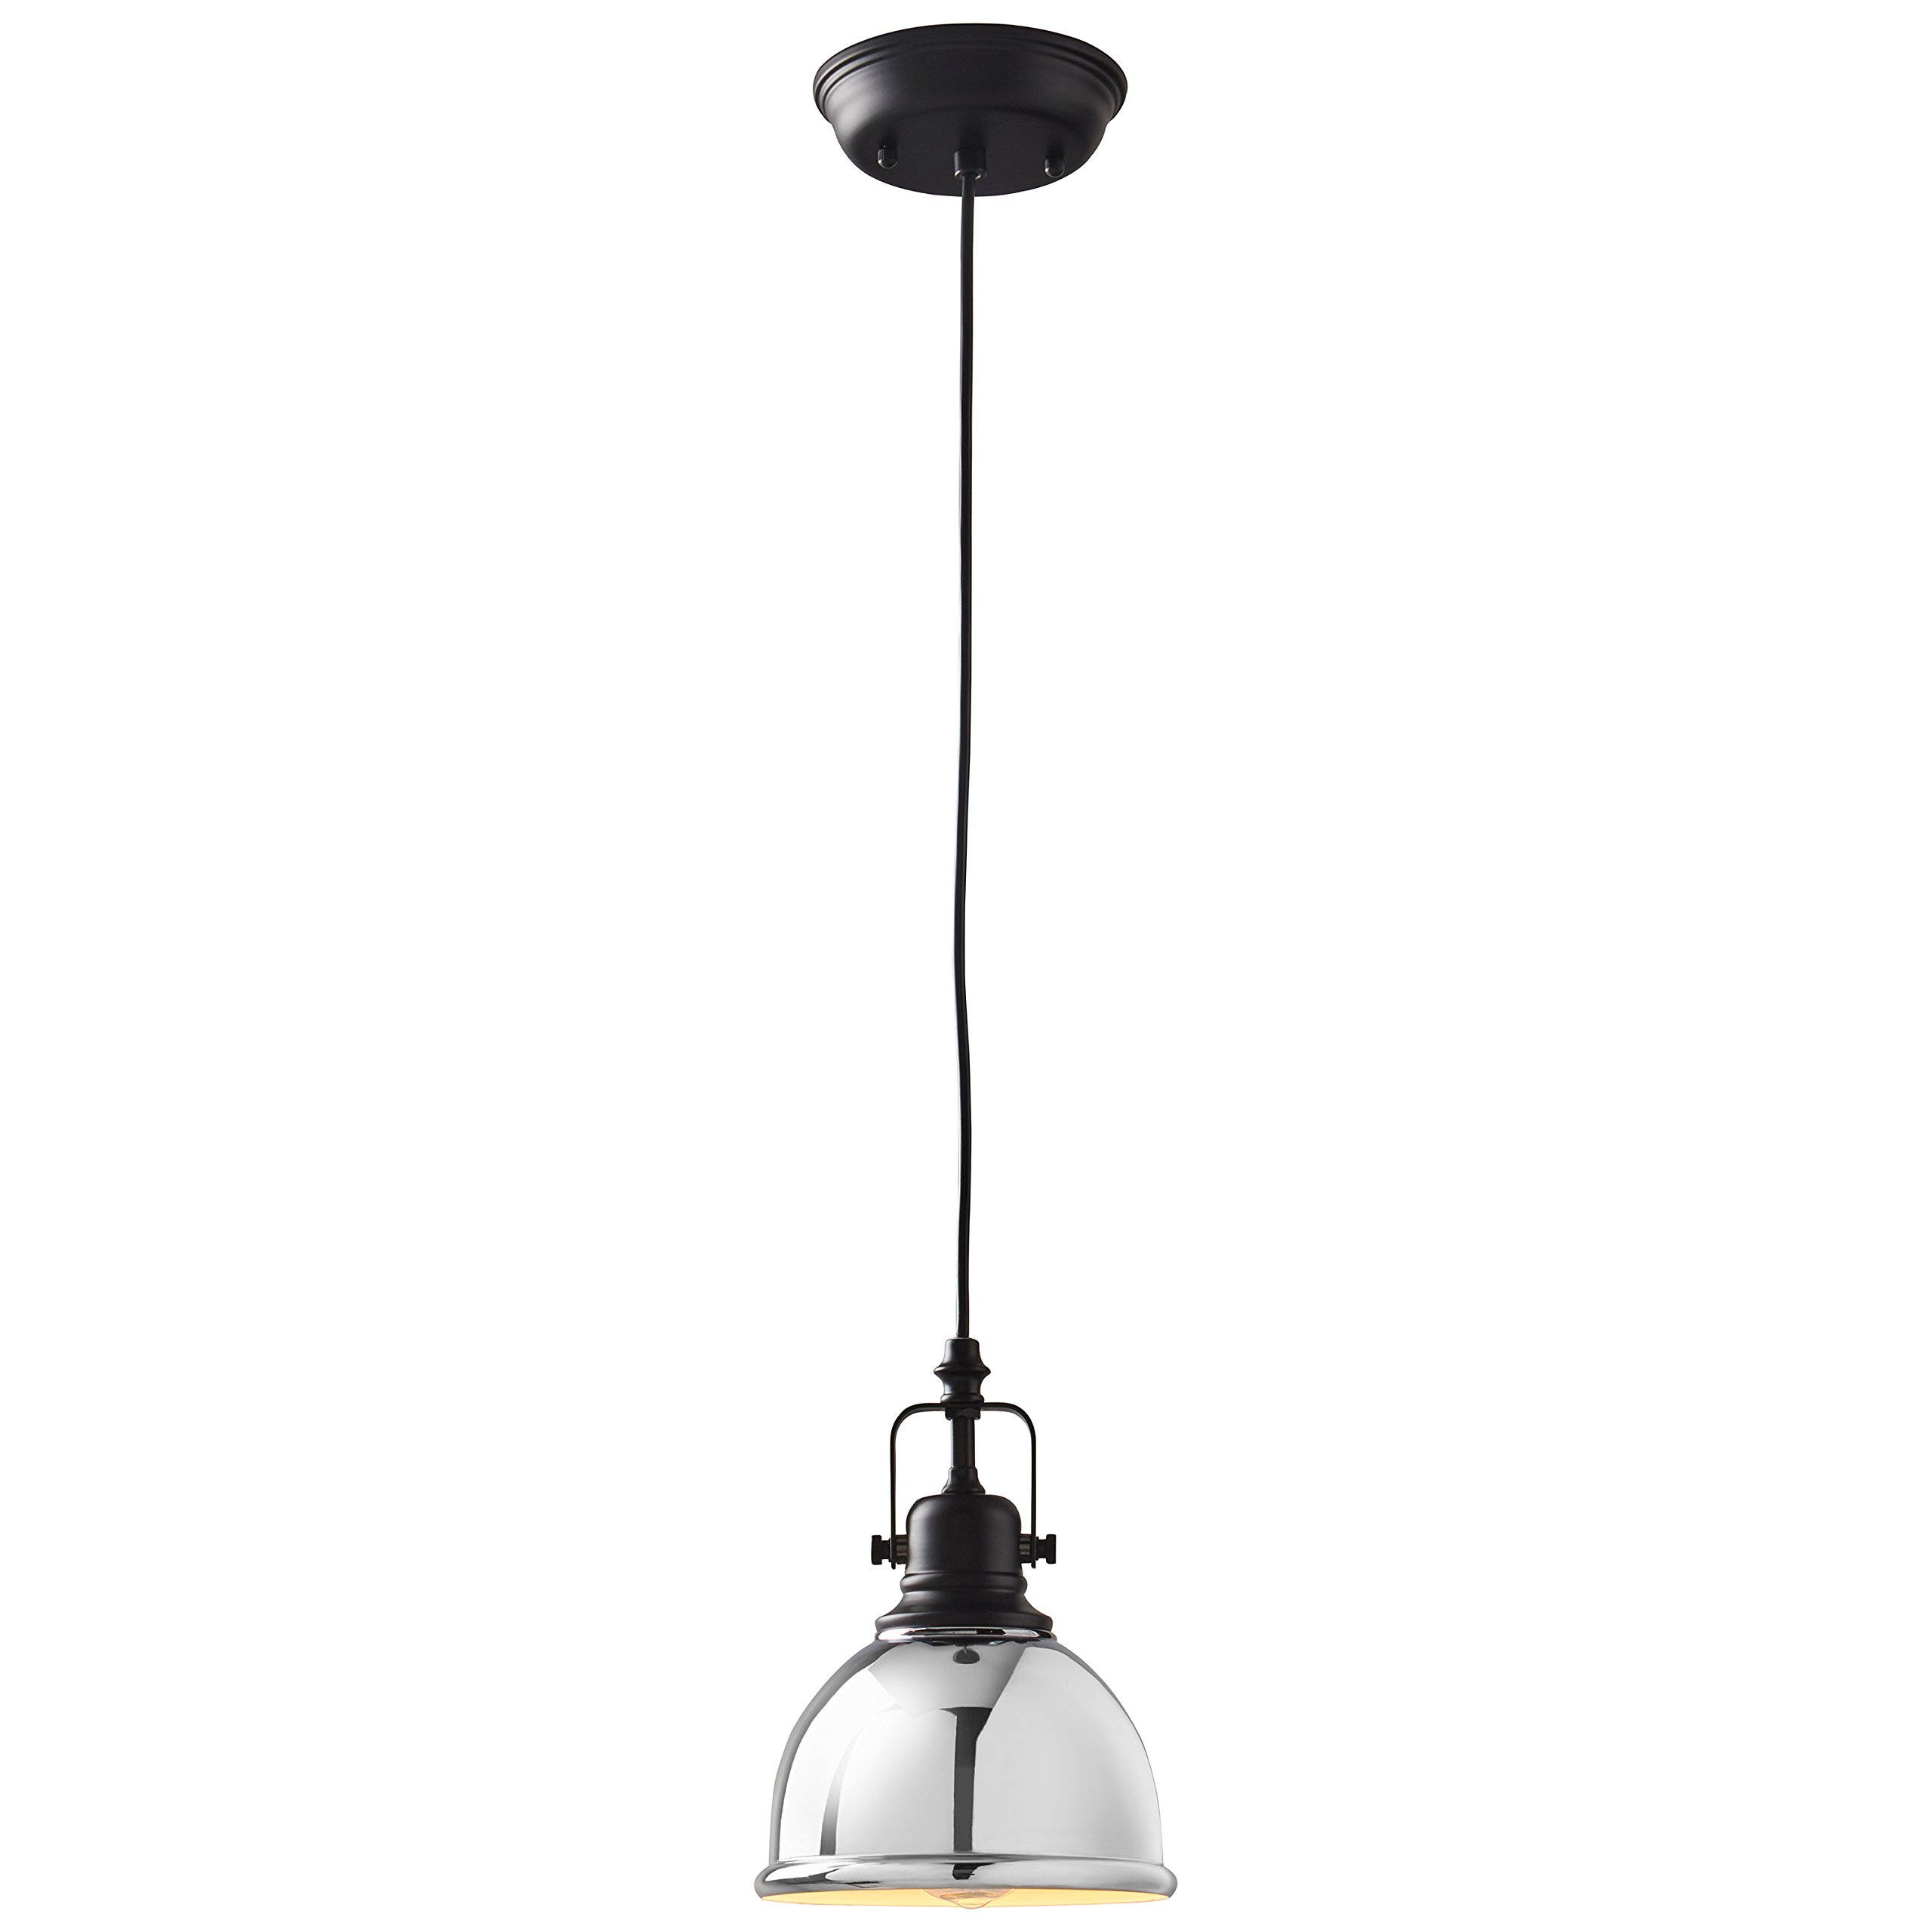 Stone & Beam Modern Pendant With Bulb, 10''-58''H, Chrome and Black